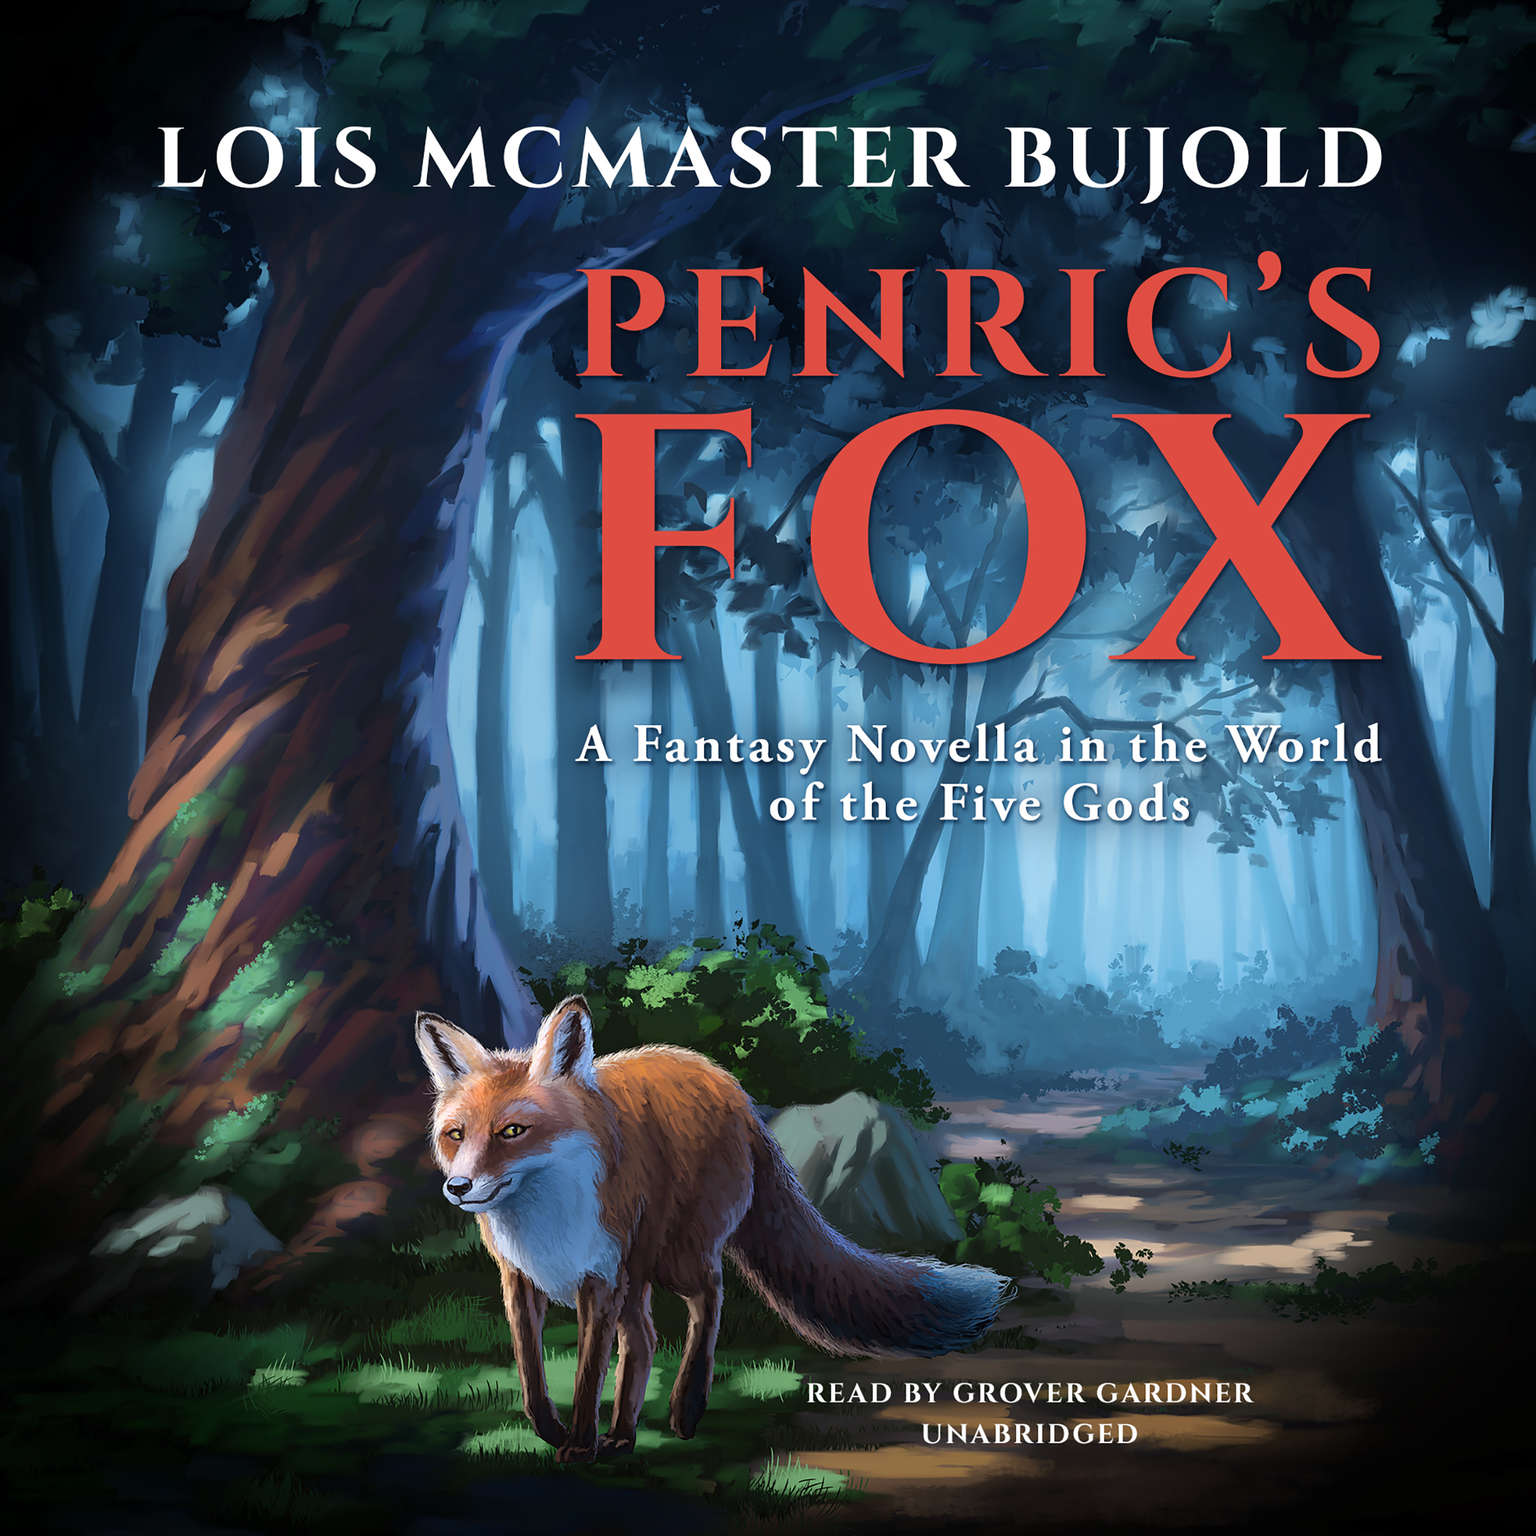 Penric's Fox: A Fantasy Novella in the World of the Five Gods Audiobook, by Lois McMaster Bujold